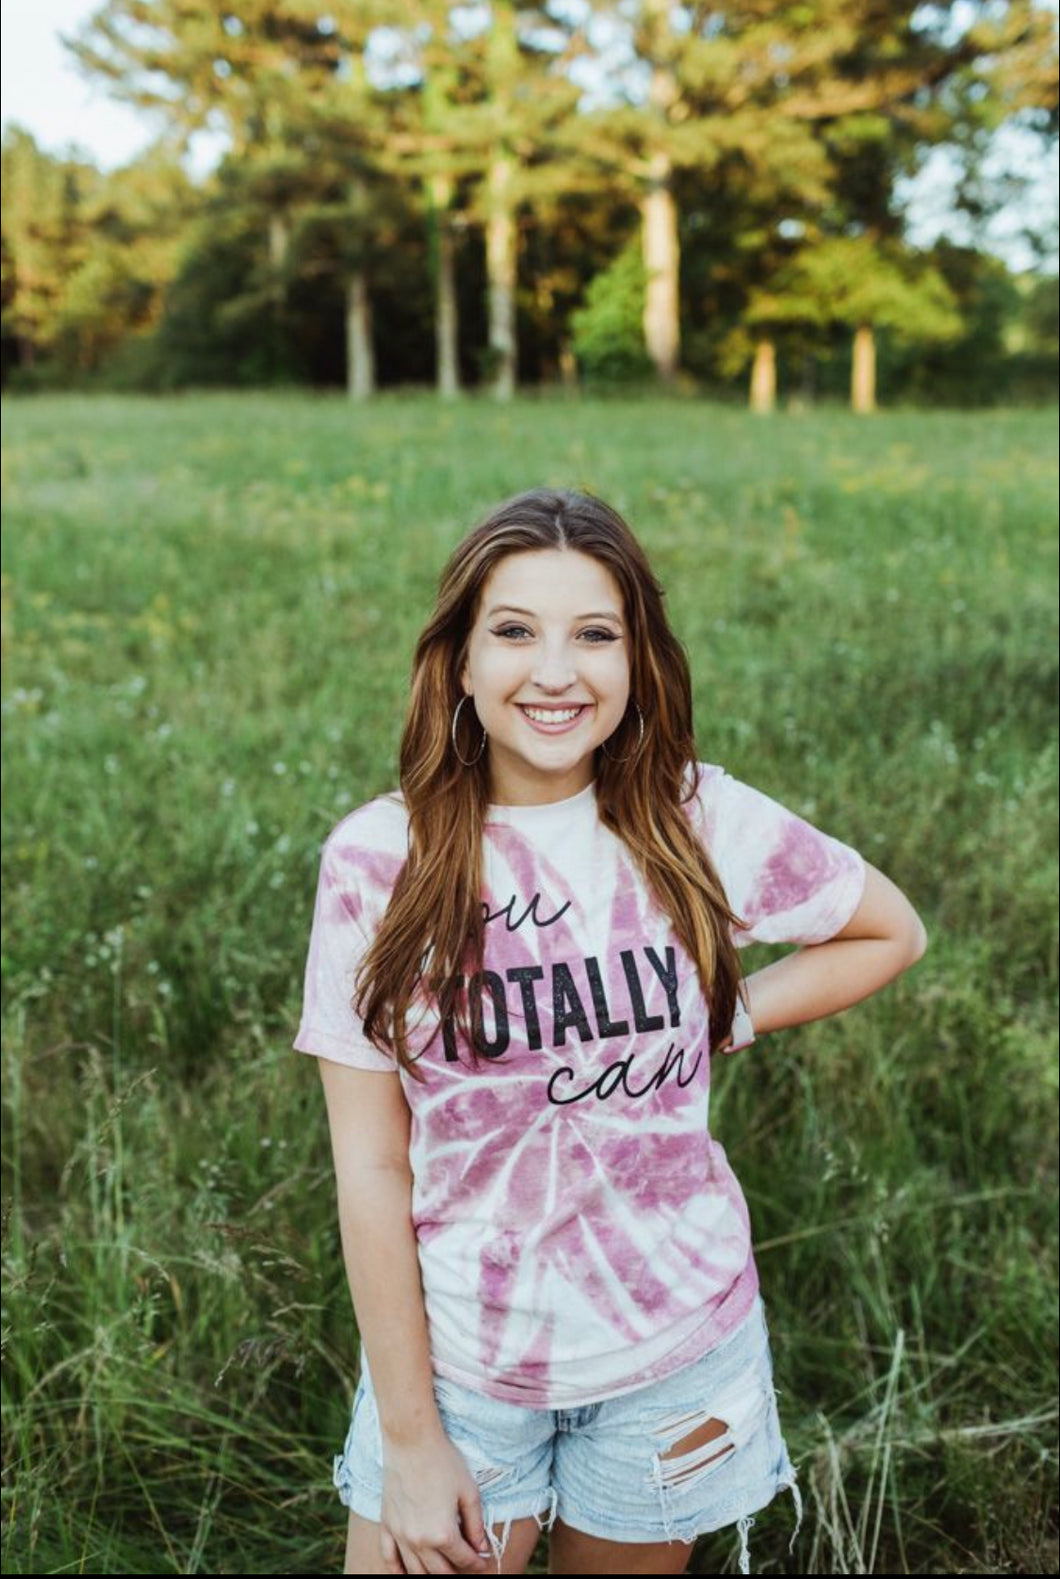 You Totally Can (Heather Cassis) TIE DYE DISTRESSED